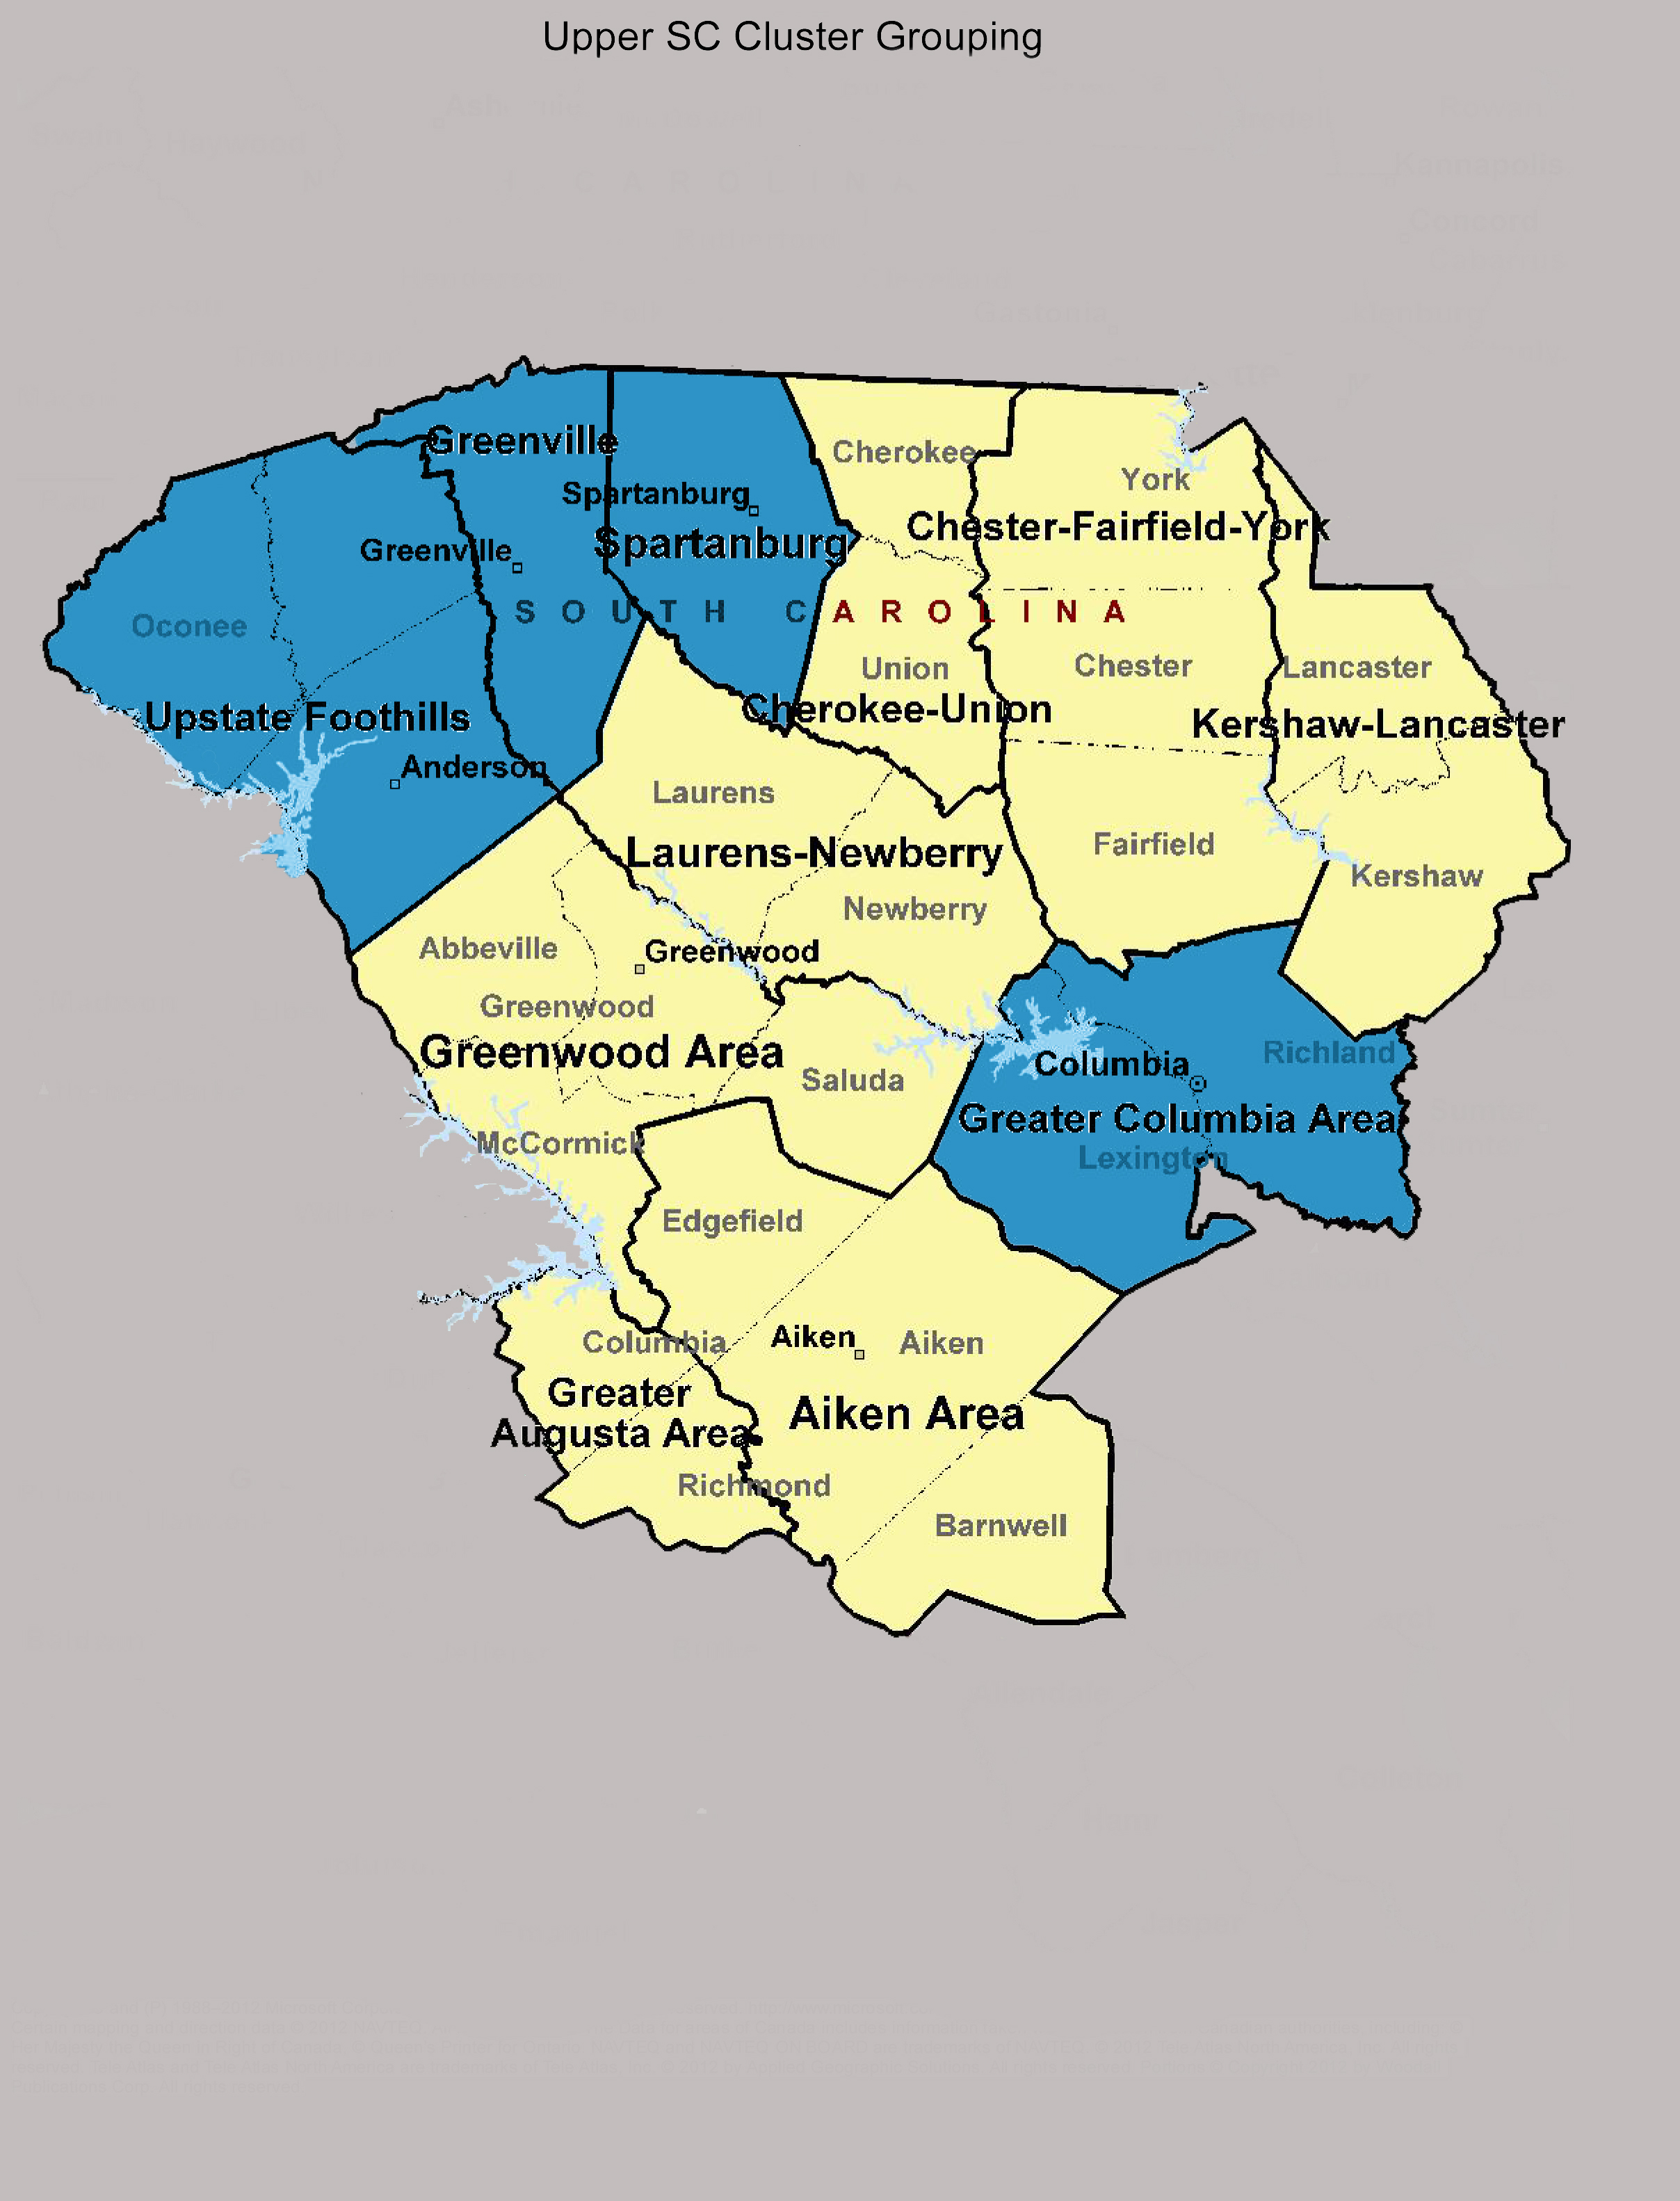 Upper South Carolina Cluster Grouping  Regional Bah Council of